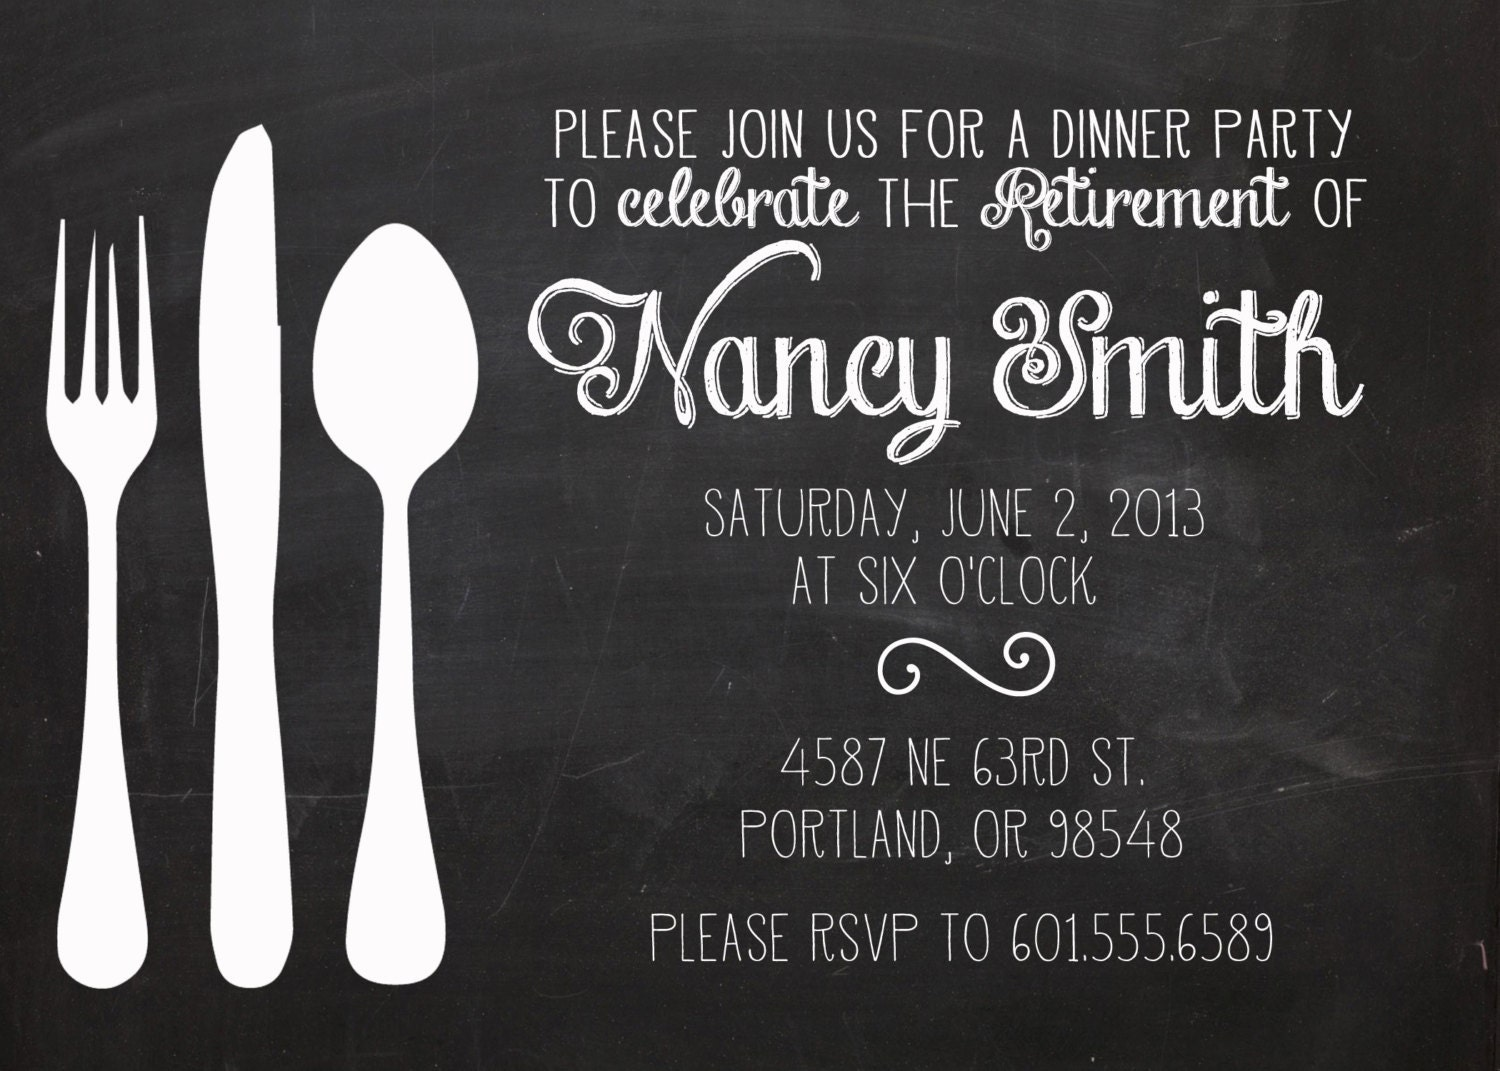 Retirement party invitation dinner party invitation retirement retirement party invitation dinner party invitation retirement party chalkboard invitation retirement party invite luncheon invitation monicamarmolfo Choice Image